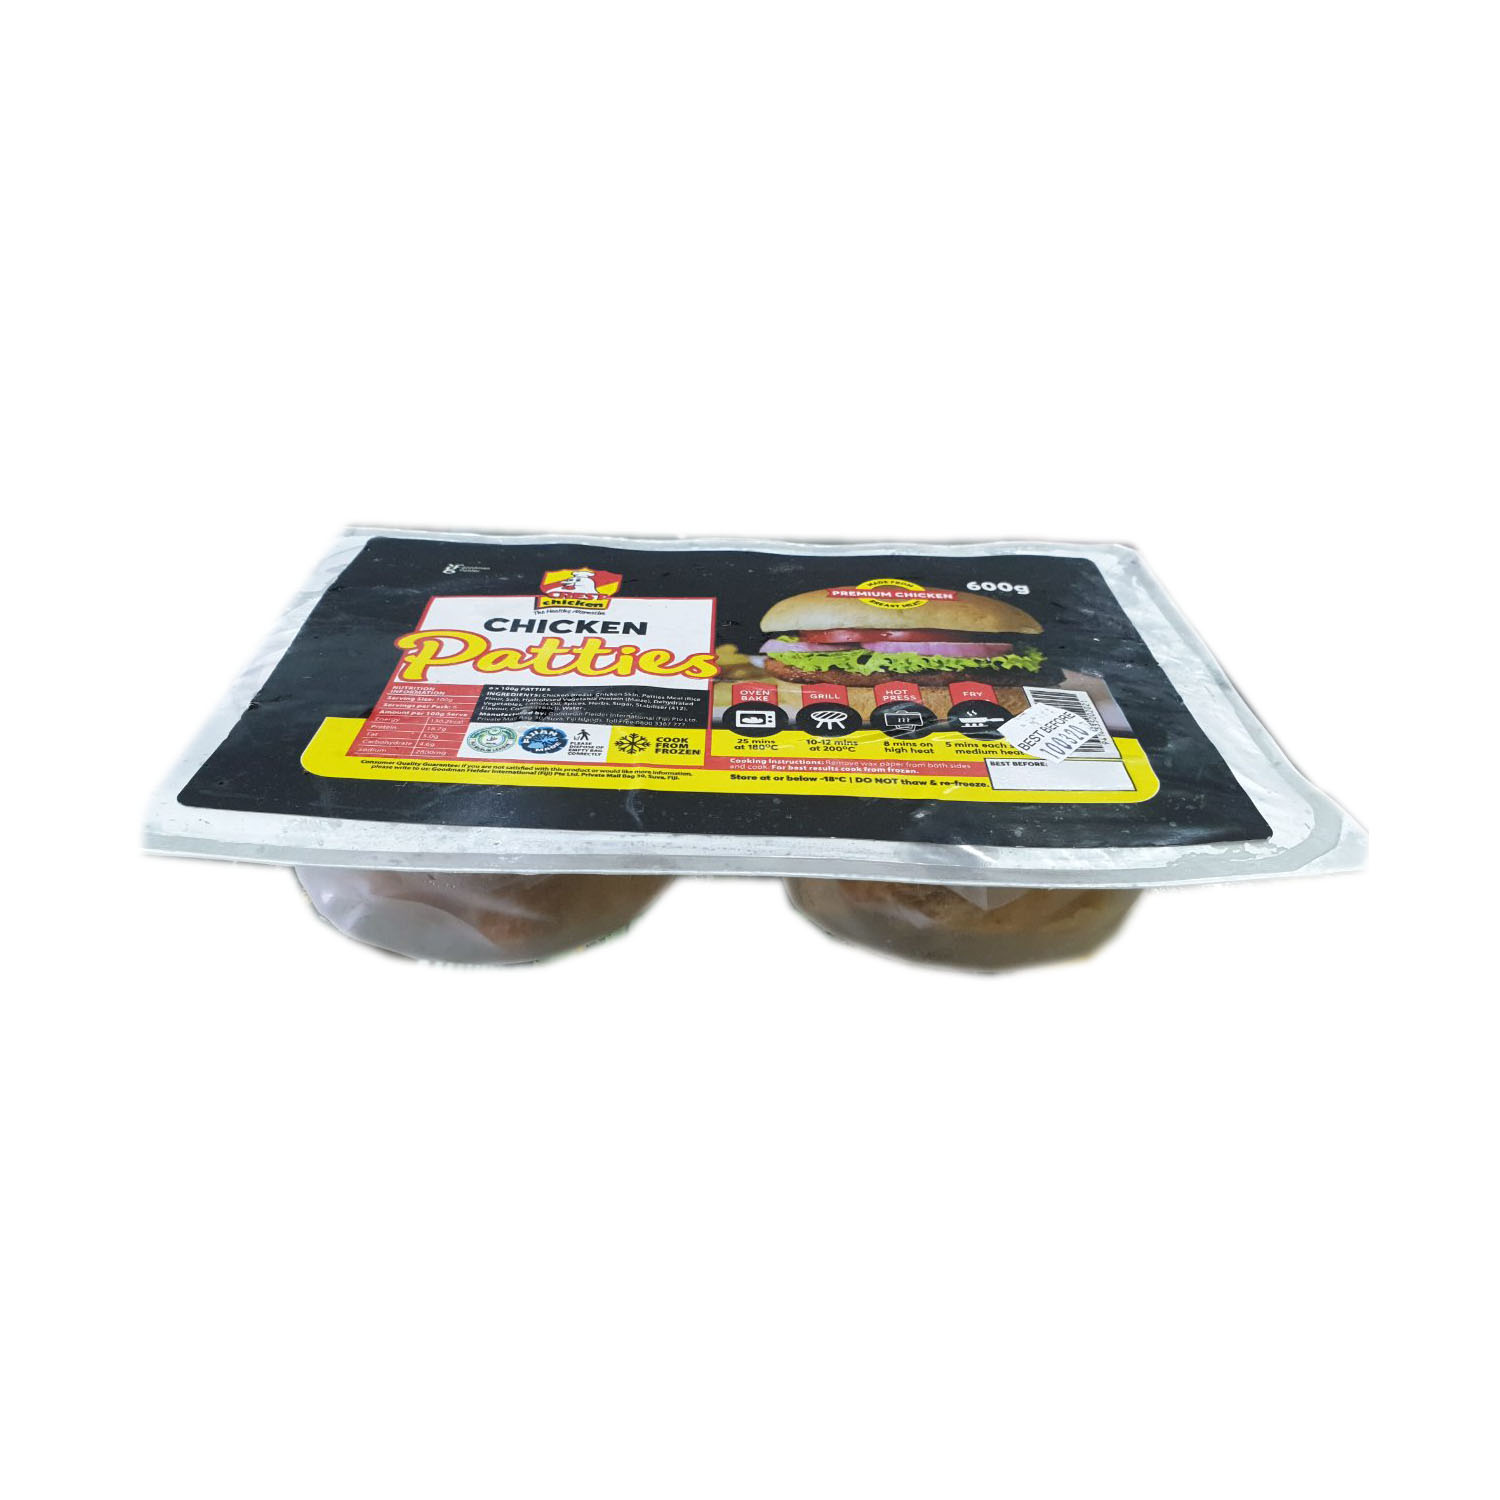 Crest Chicken Patties 600g